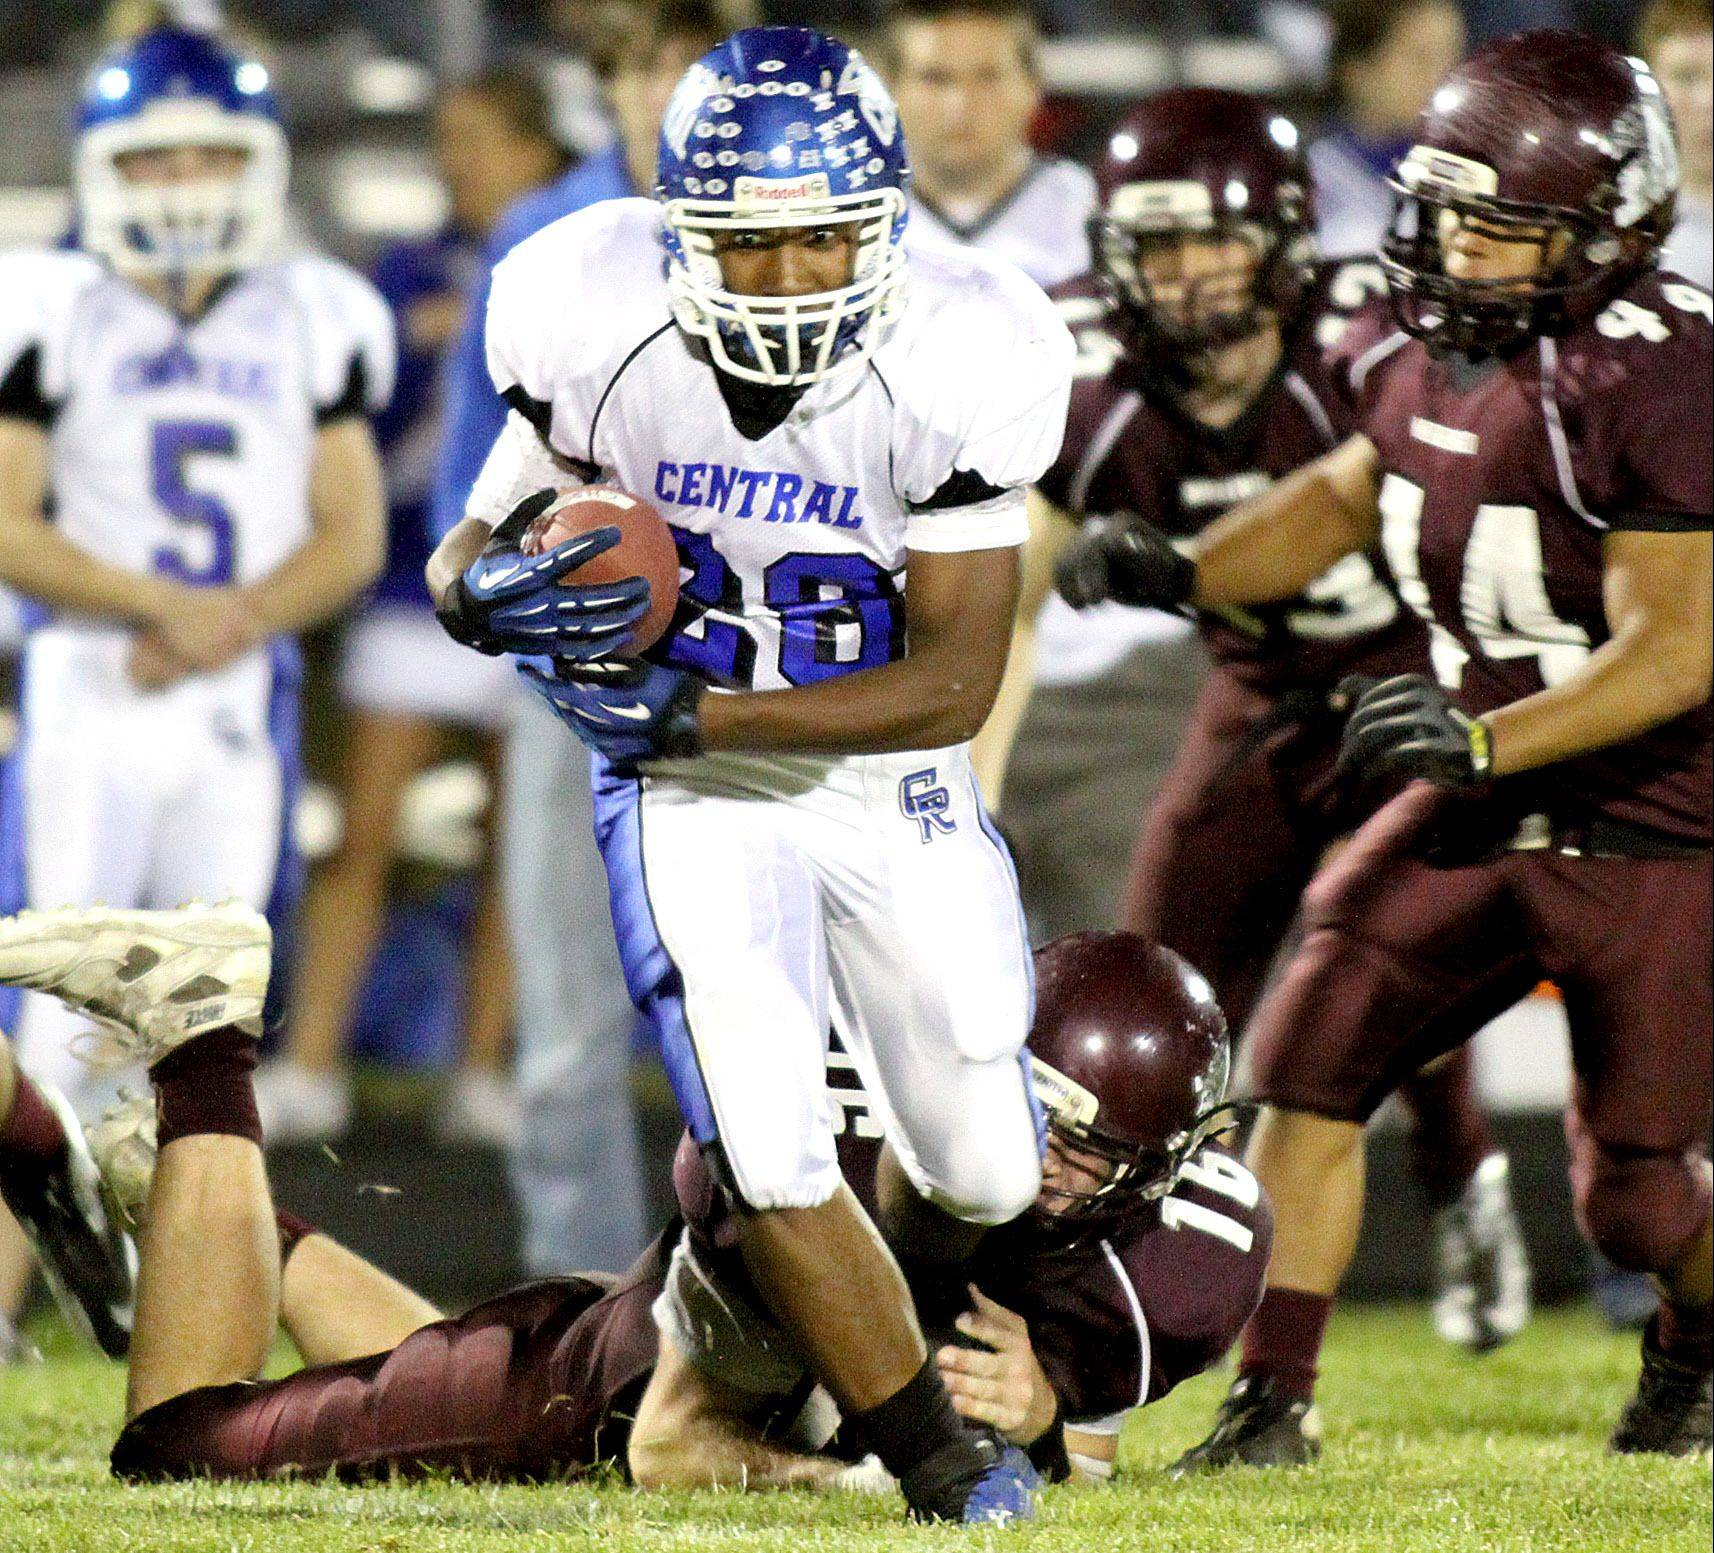 Burlington Central's Trevor Davison moves the ball during a varsity football game at Rod Poppe Field in Marengo on Friday night.